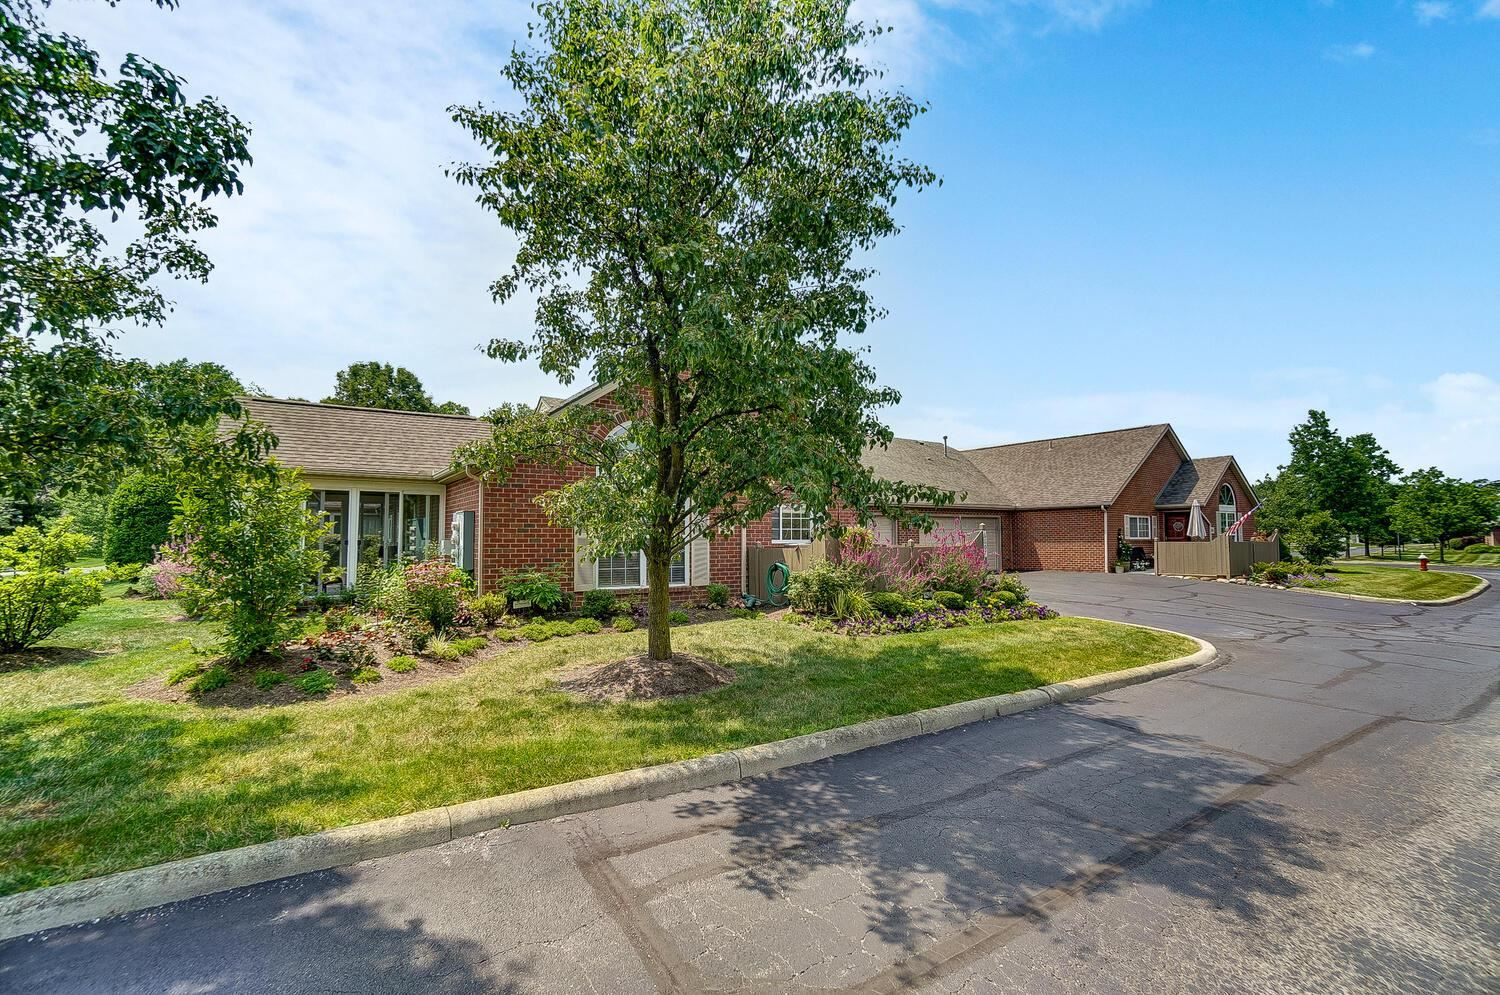 Photo of 6807 Winrock Drive #16-680, New Albany, OH 43054 (MLS # 221028534)